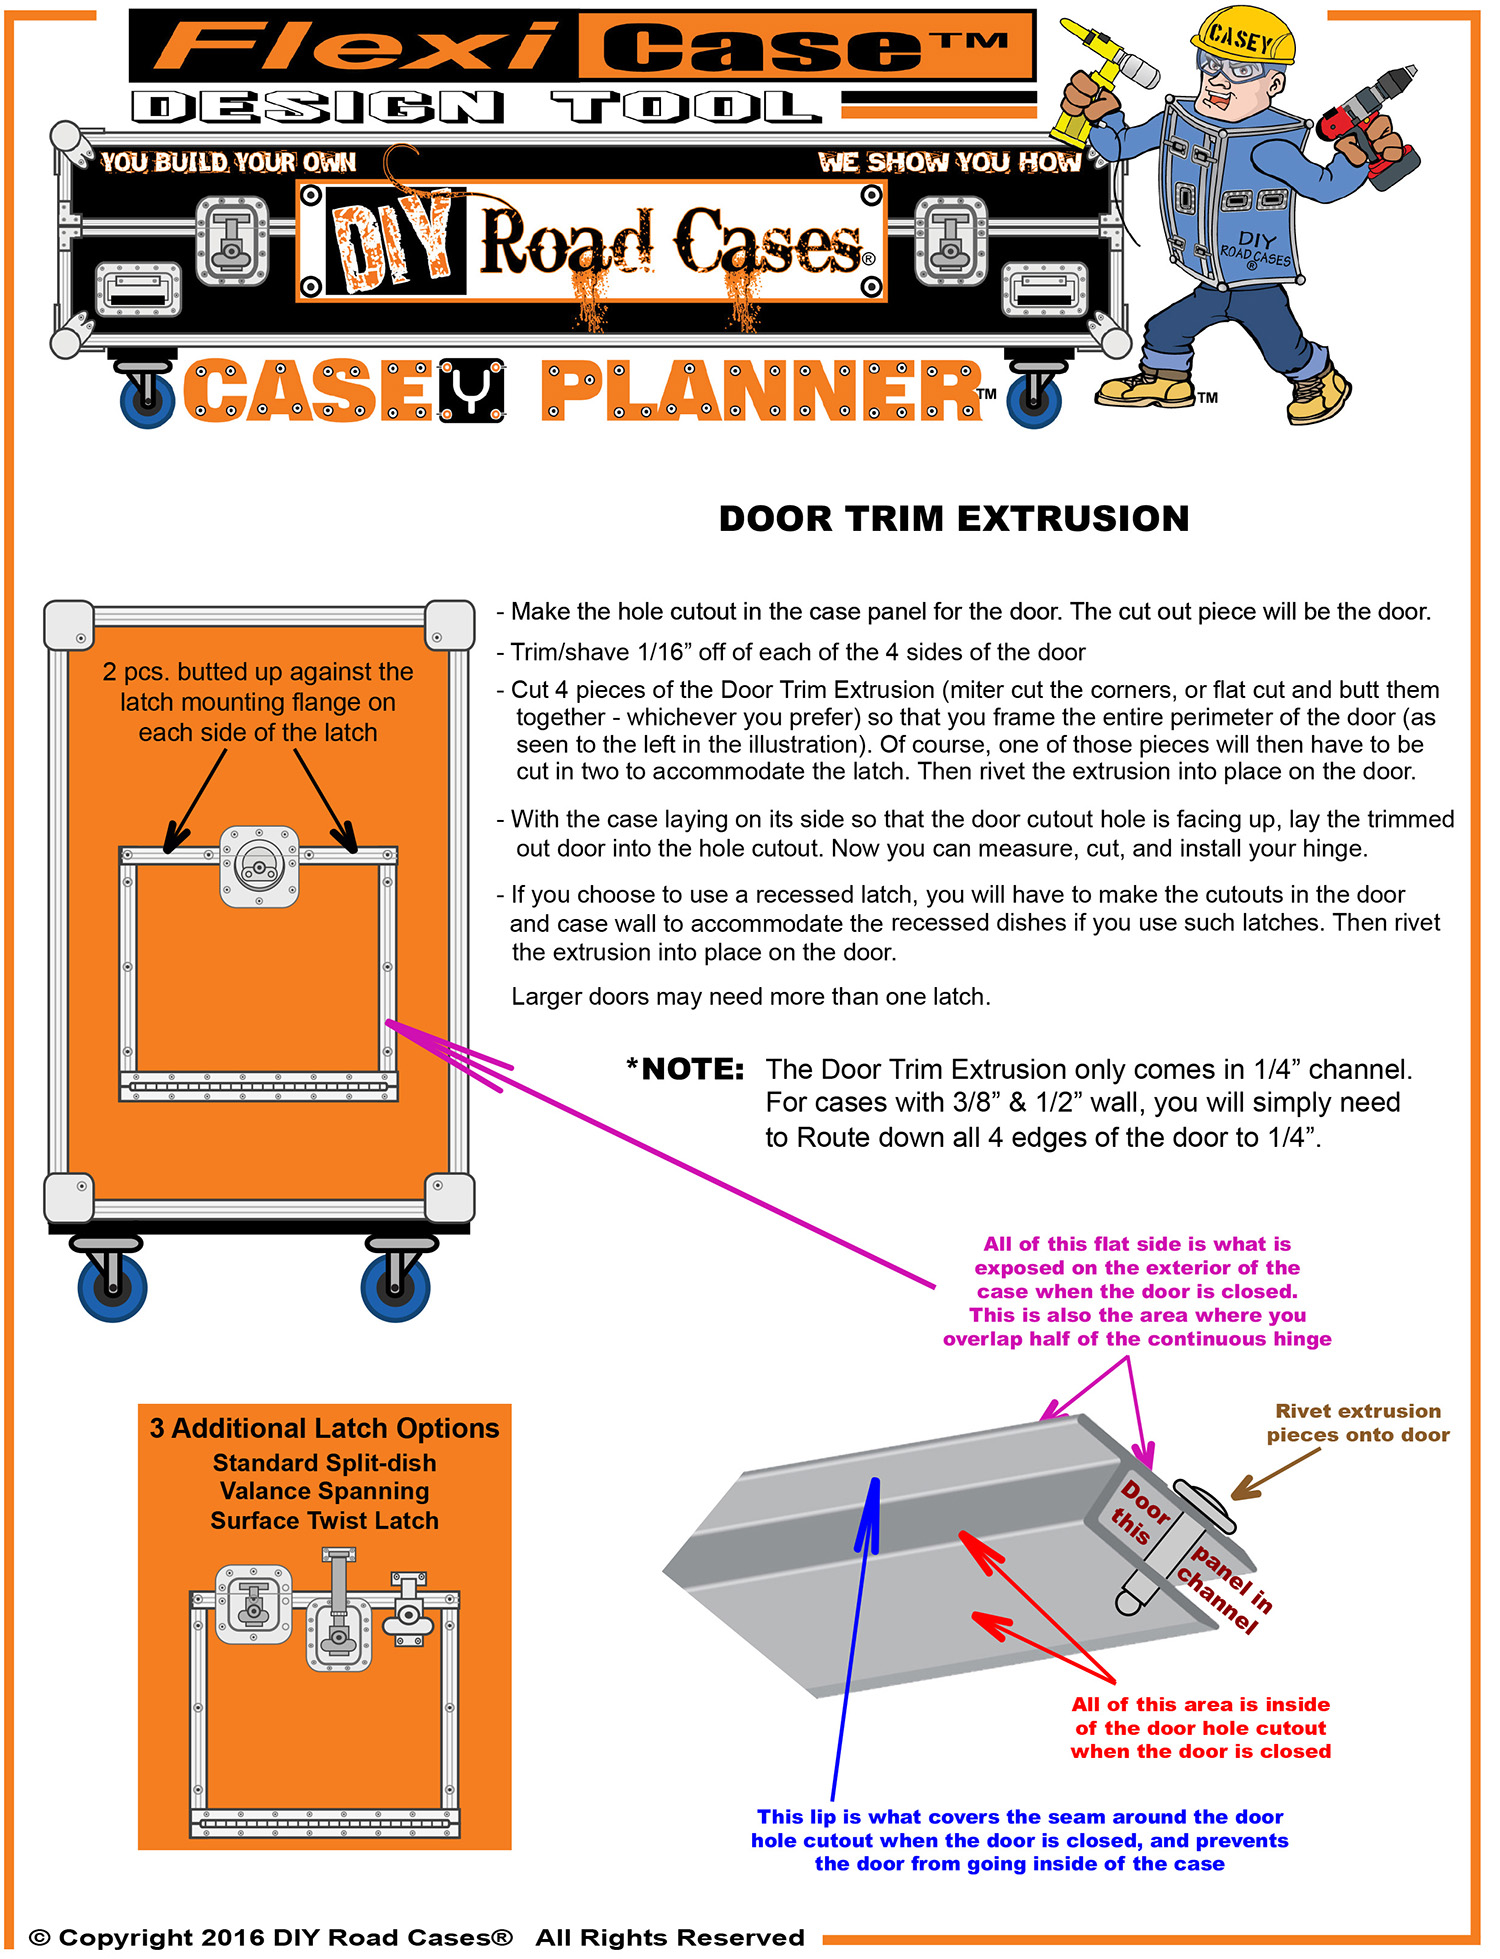 door-trim-extrusion-jpg-for-store-updated-newest.jpg